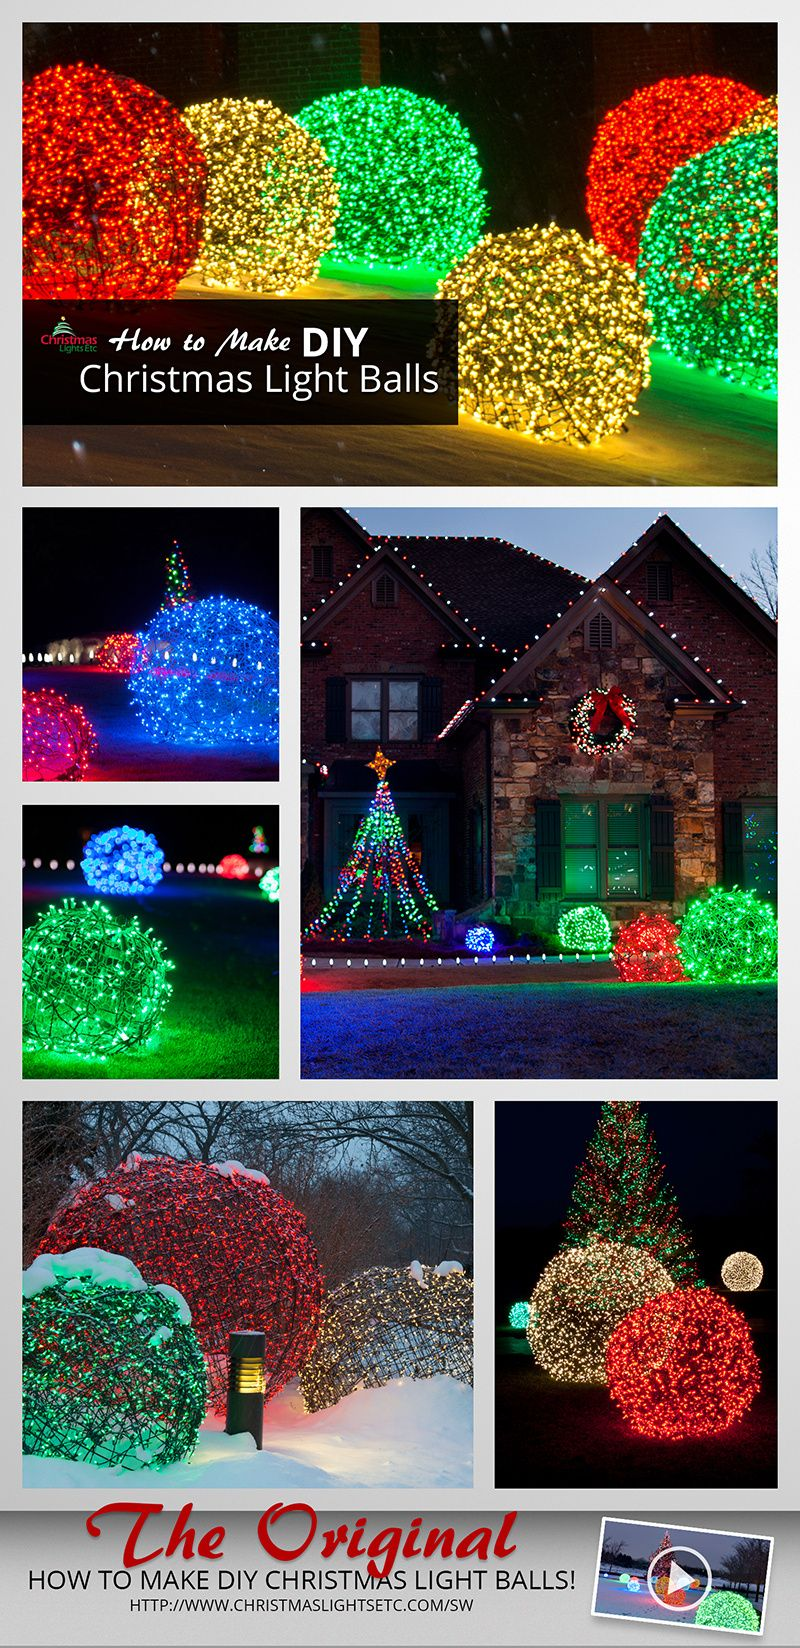 medium resolution of how to make wildly popular christmas light balls using chicken wire and string lights you can add diy light balls to your outdoor christmas decorations